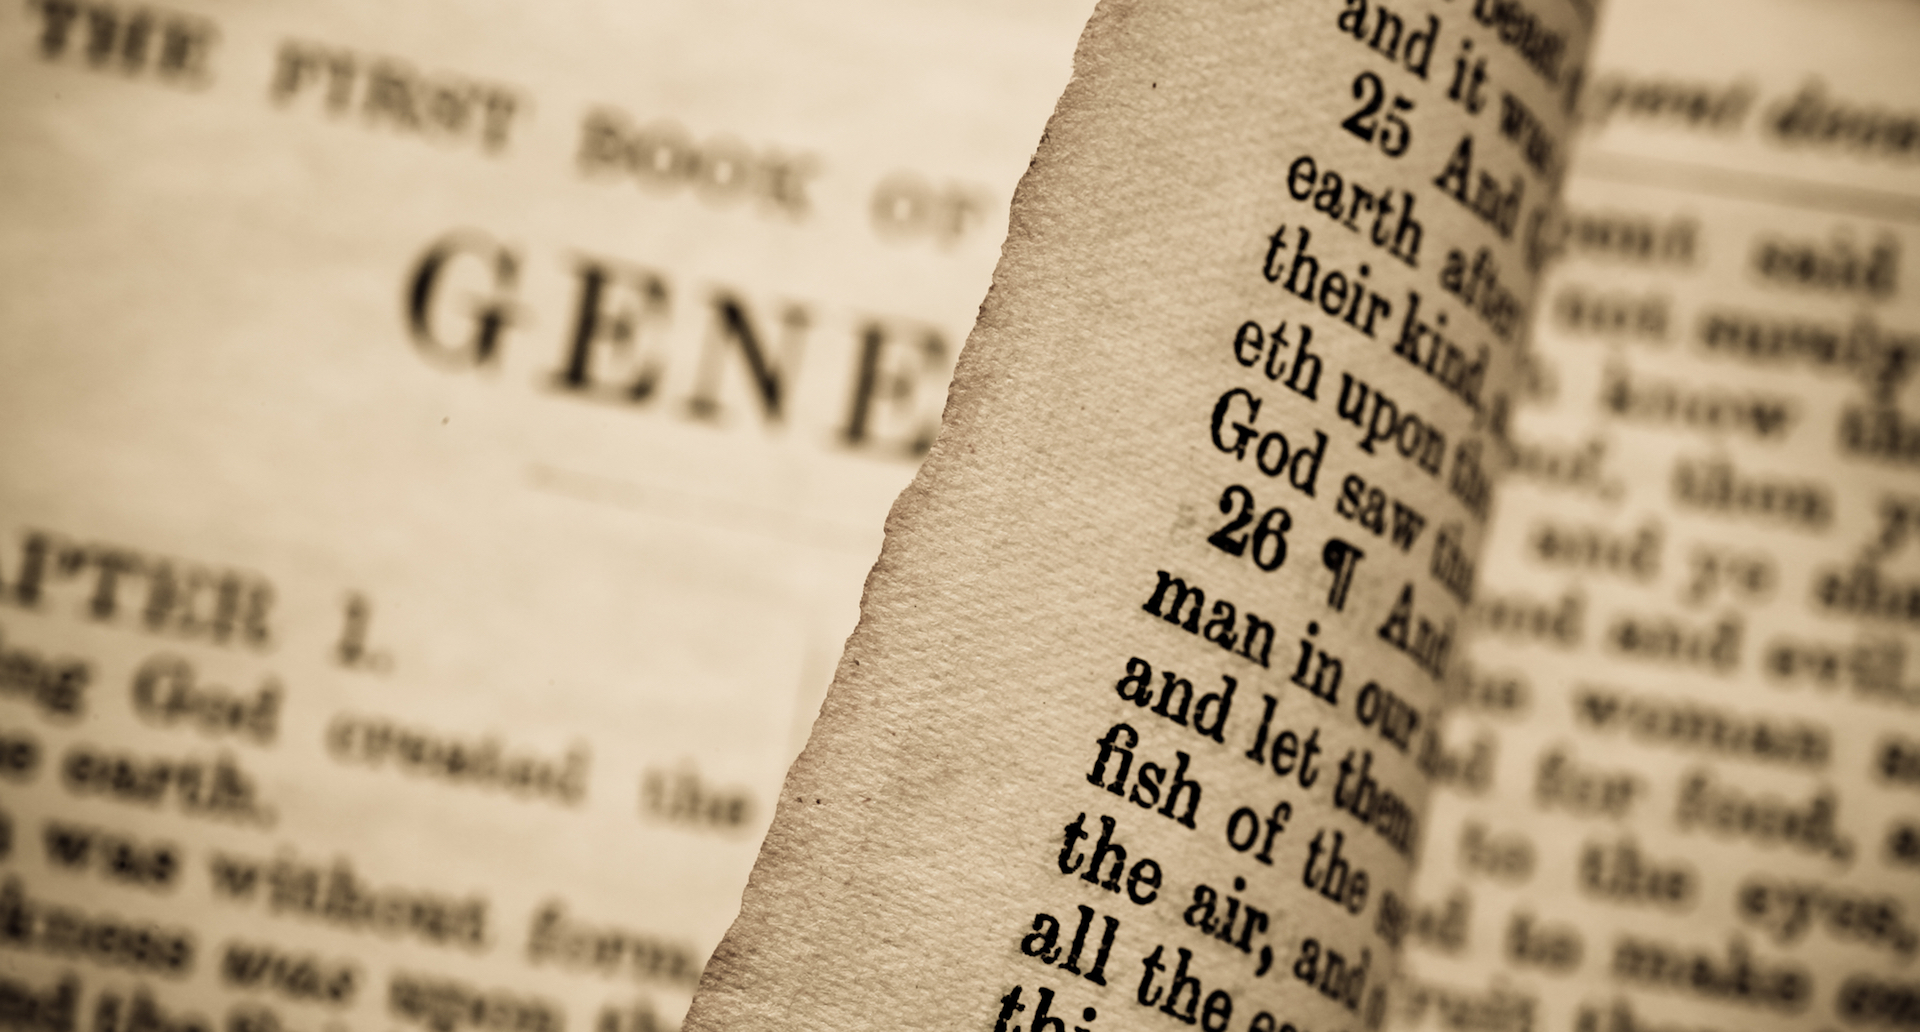 Holy Bible page turning in Genesis - Christians and the Old Testament Law